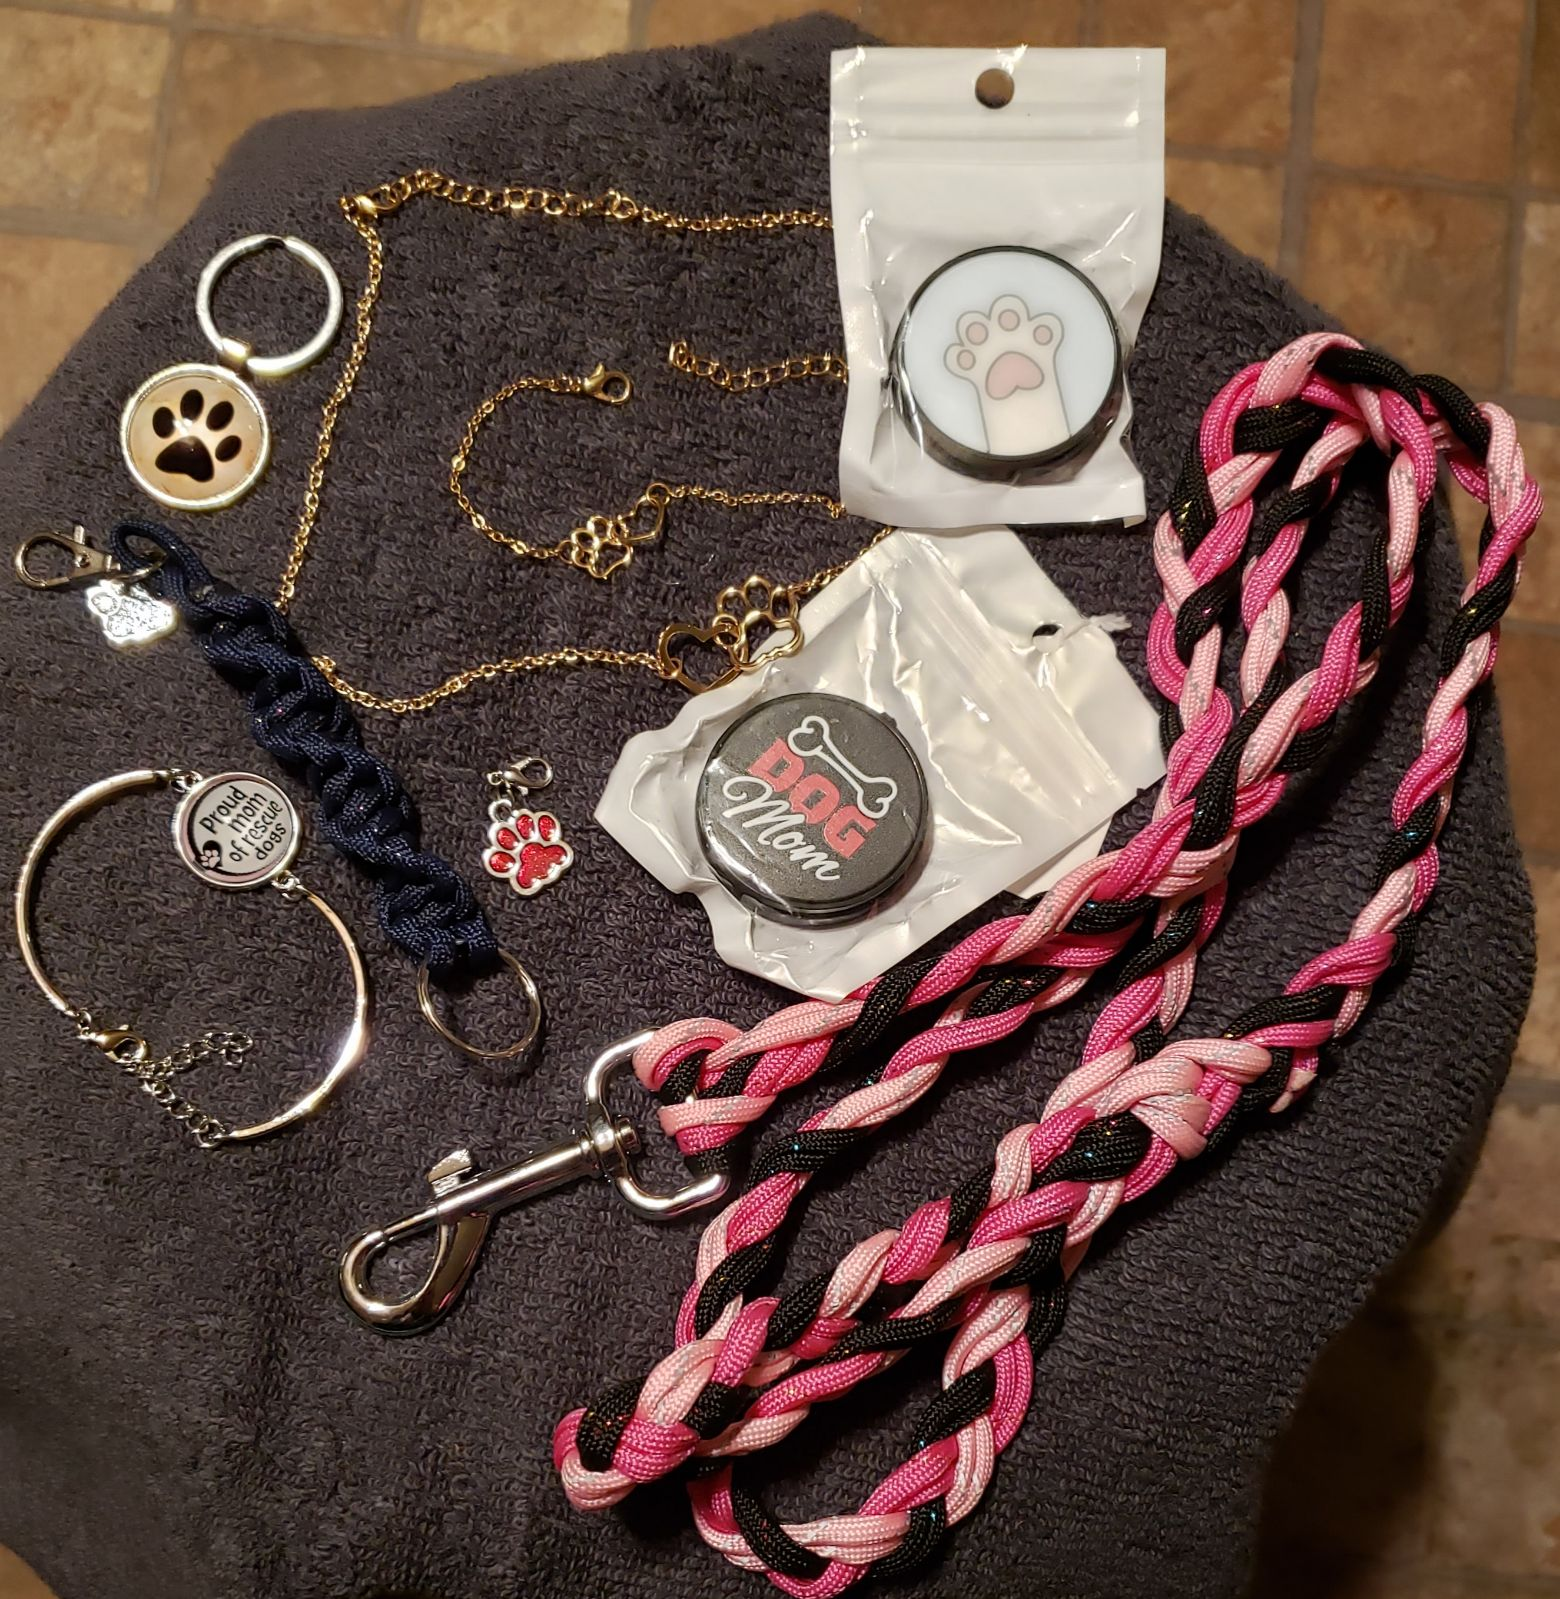 9 Pc Dog Mom Lot of Jewelry & More, NWOT